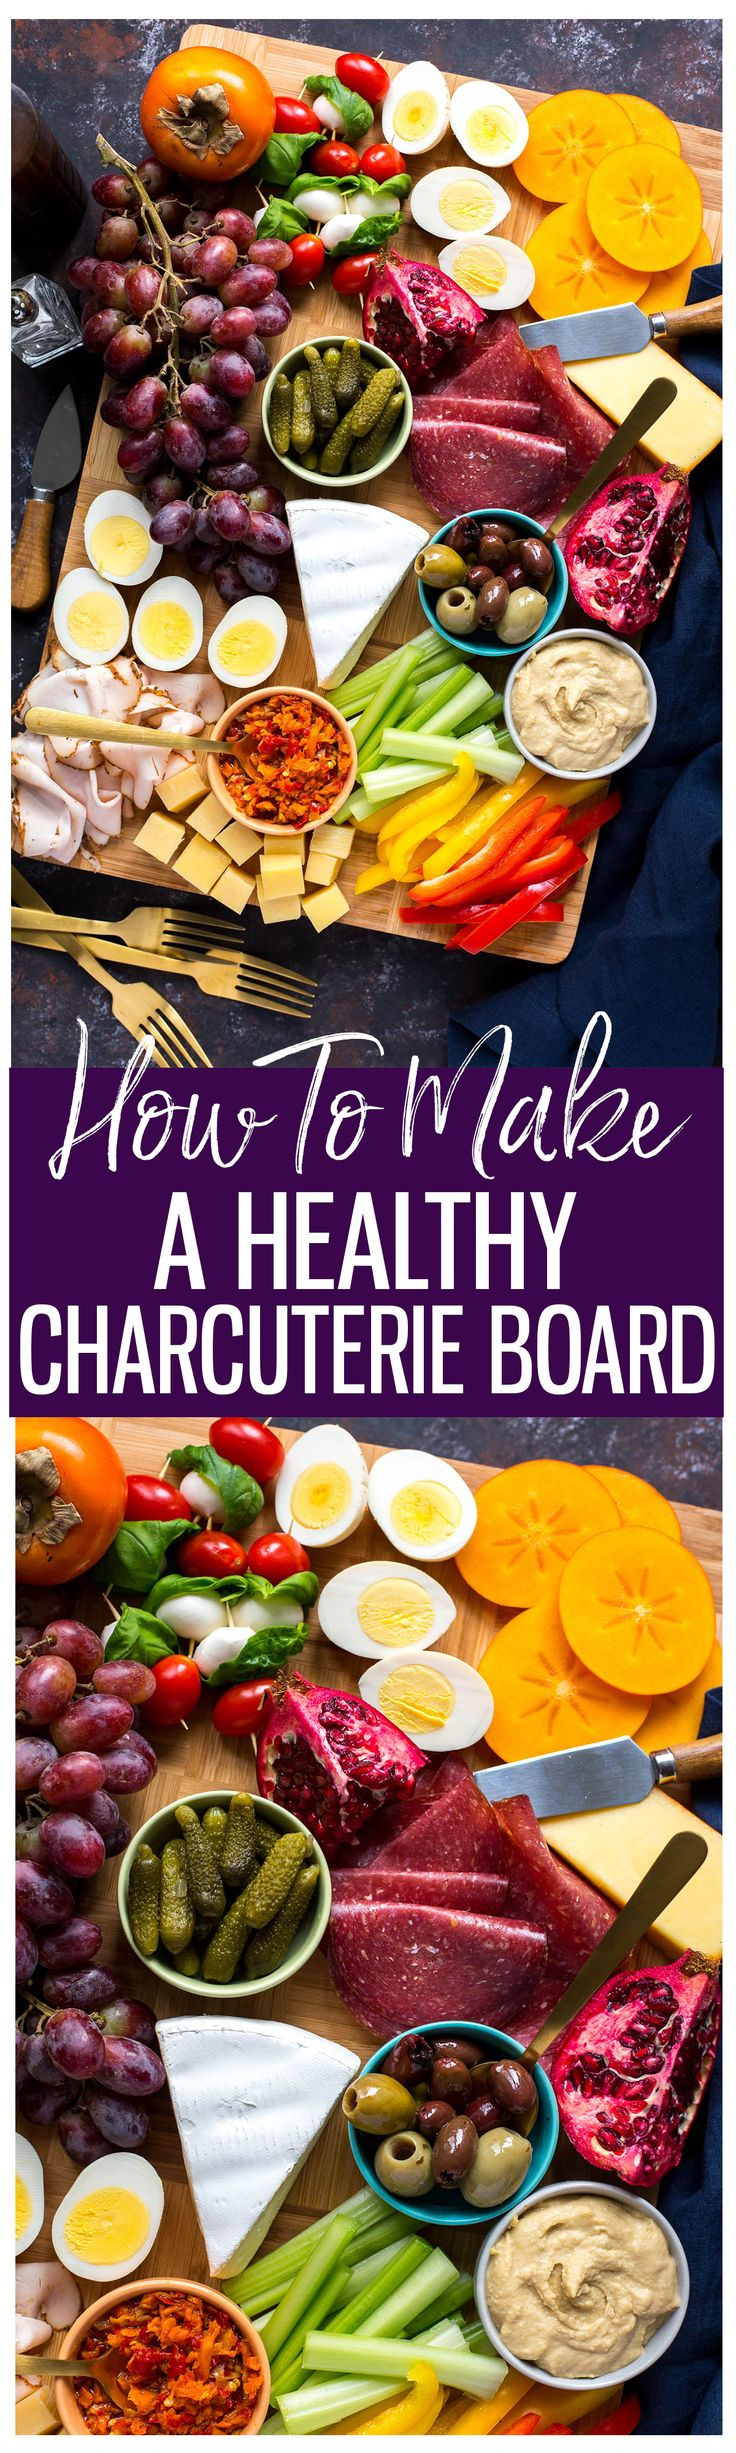 This Protein-Packed Healthy Charcuterie Board is a delicious holiday appetizer idea with nutritionally-dense, low-calorie ingredients like hard-boiled eggs, lean-deli turkey, a variety of cheeses, pickles, hummus and more!